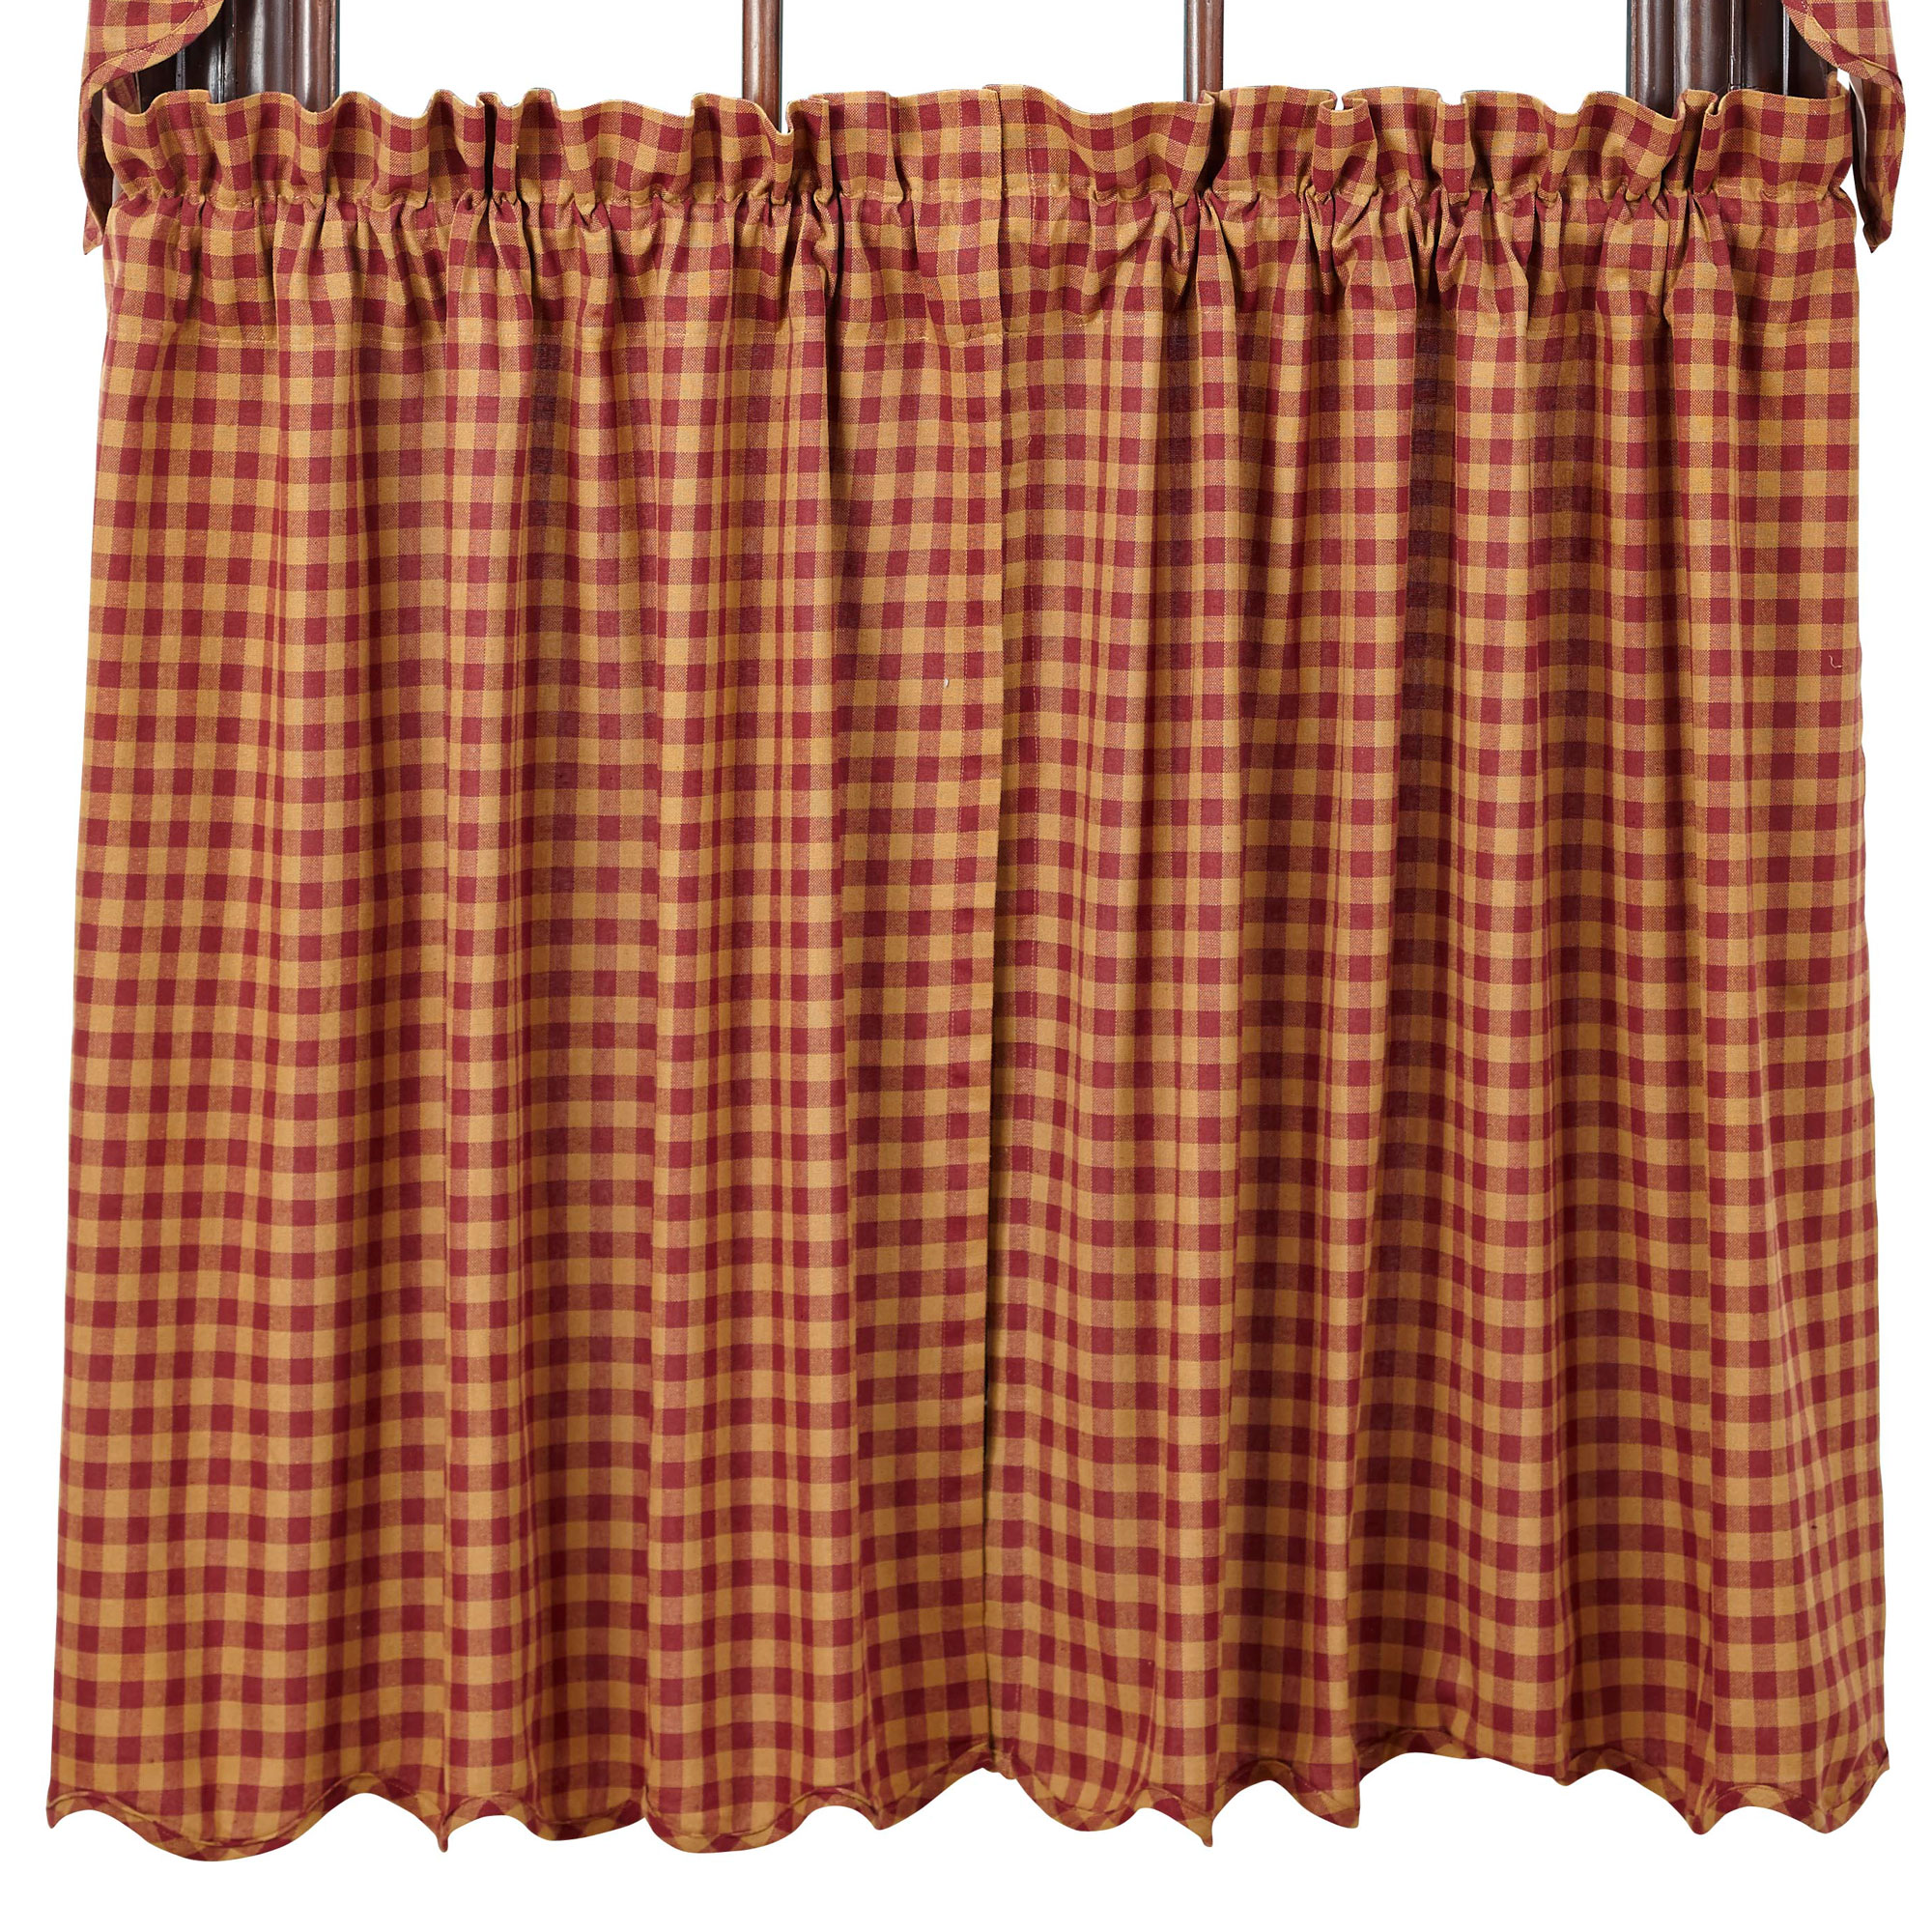 24 x 36 curtains